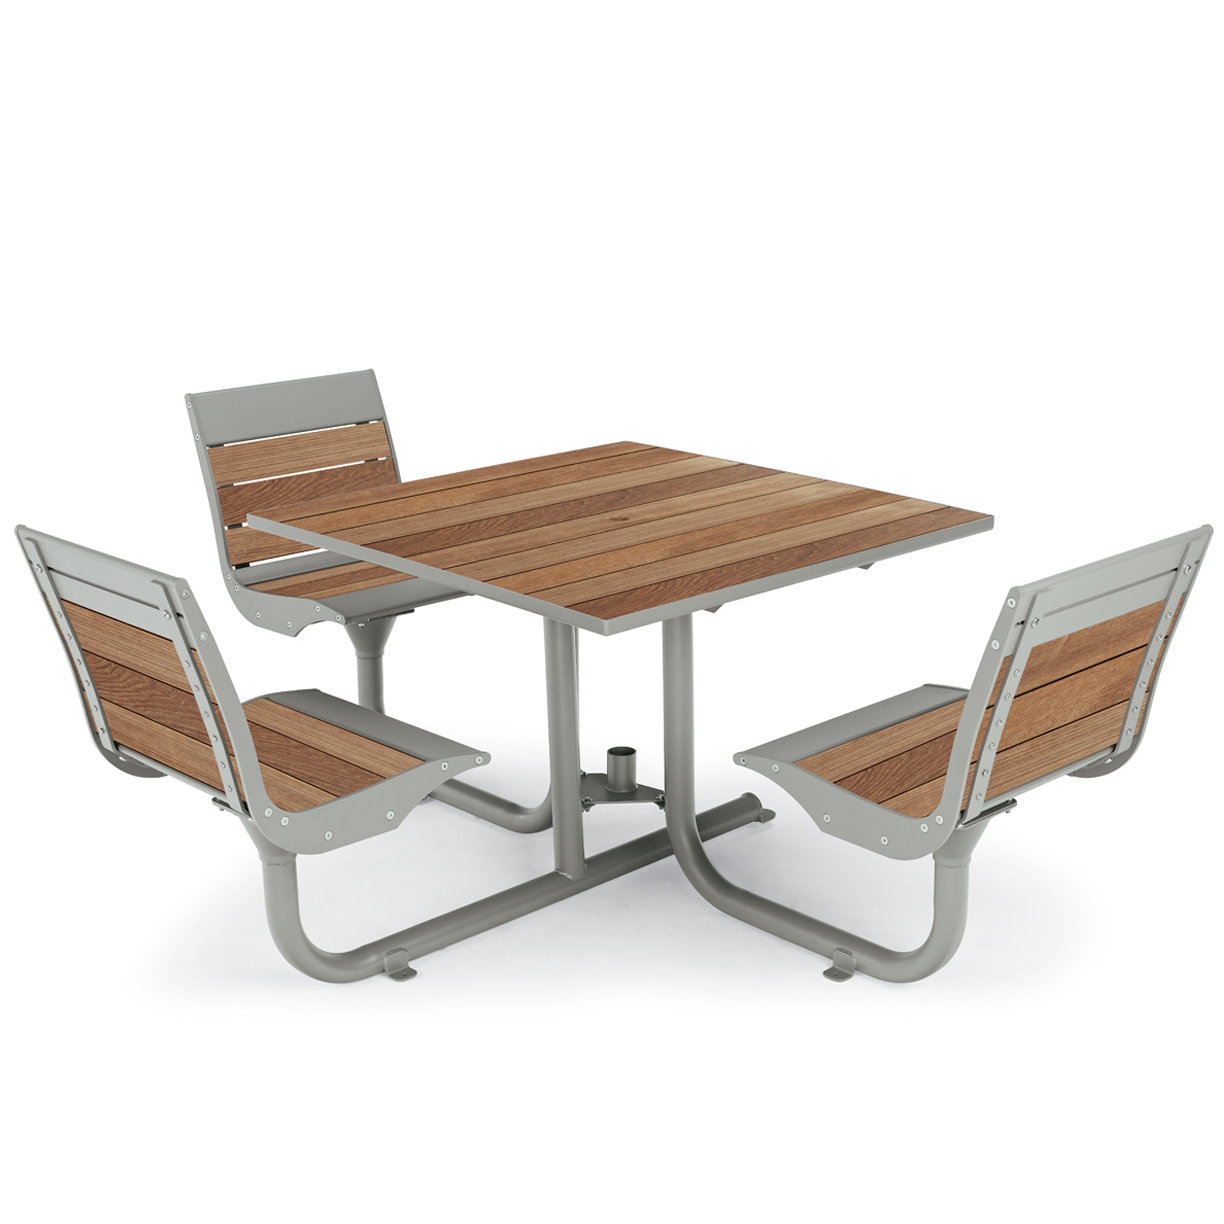 BH1830T  Beacon Hill Collection Thermony Slat ADA Compliant Table with (3) Contour Seats